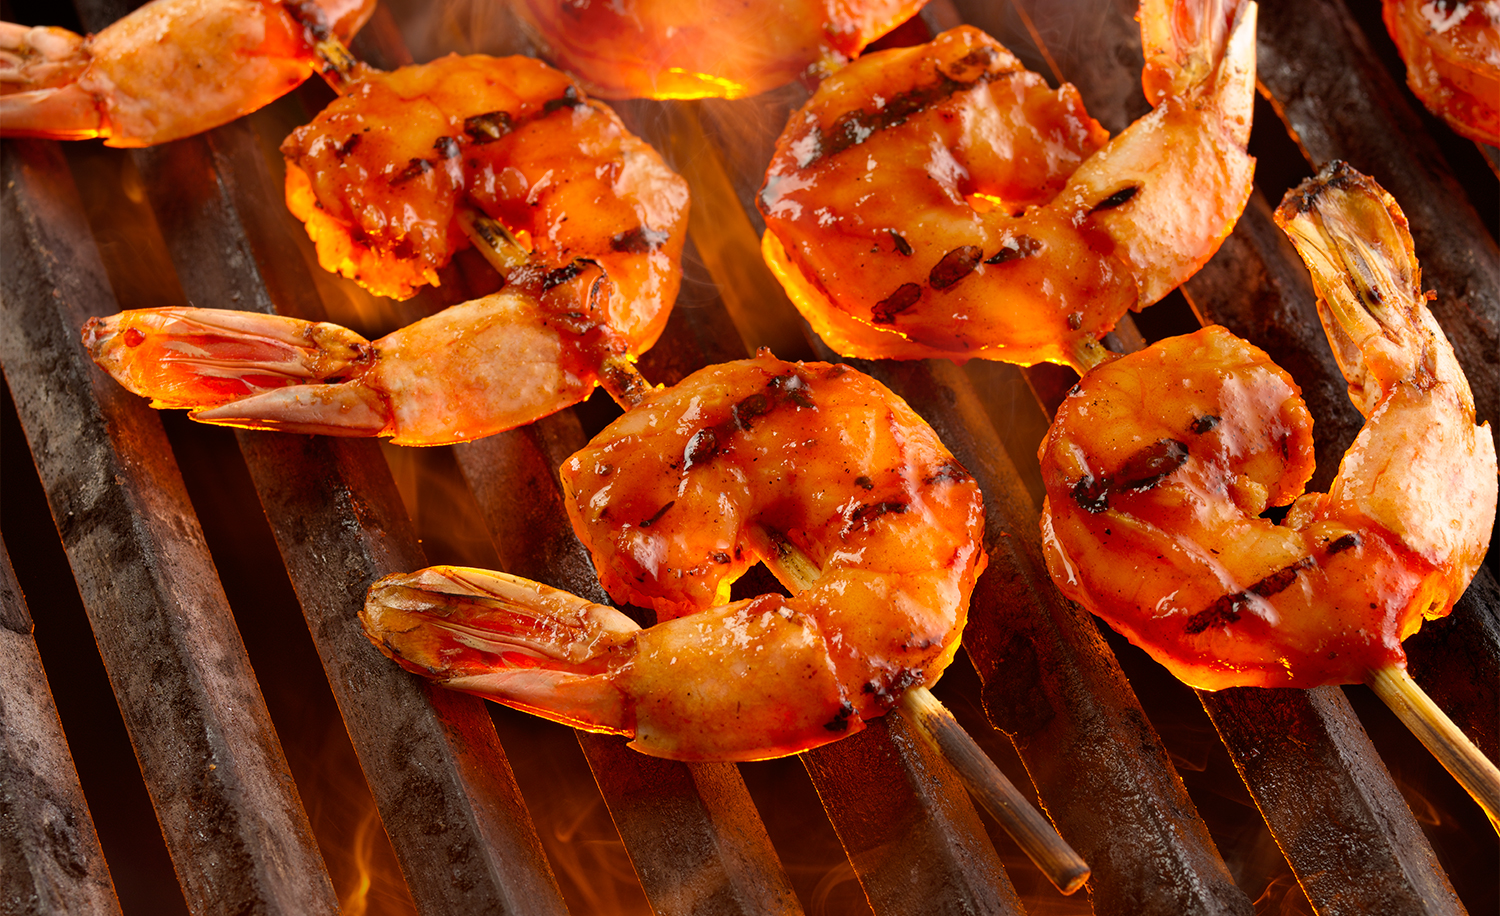 Shrimp On The Grill | Tony Kubat Photography